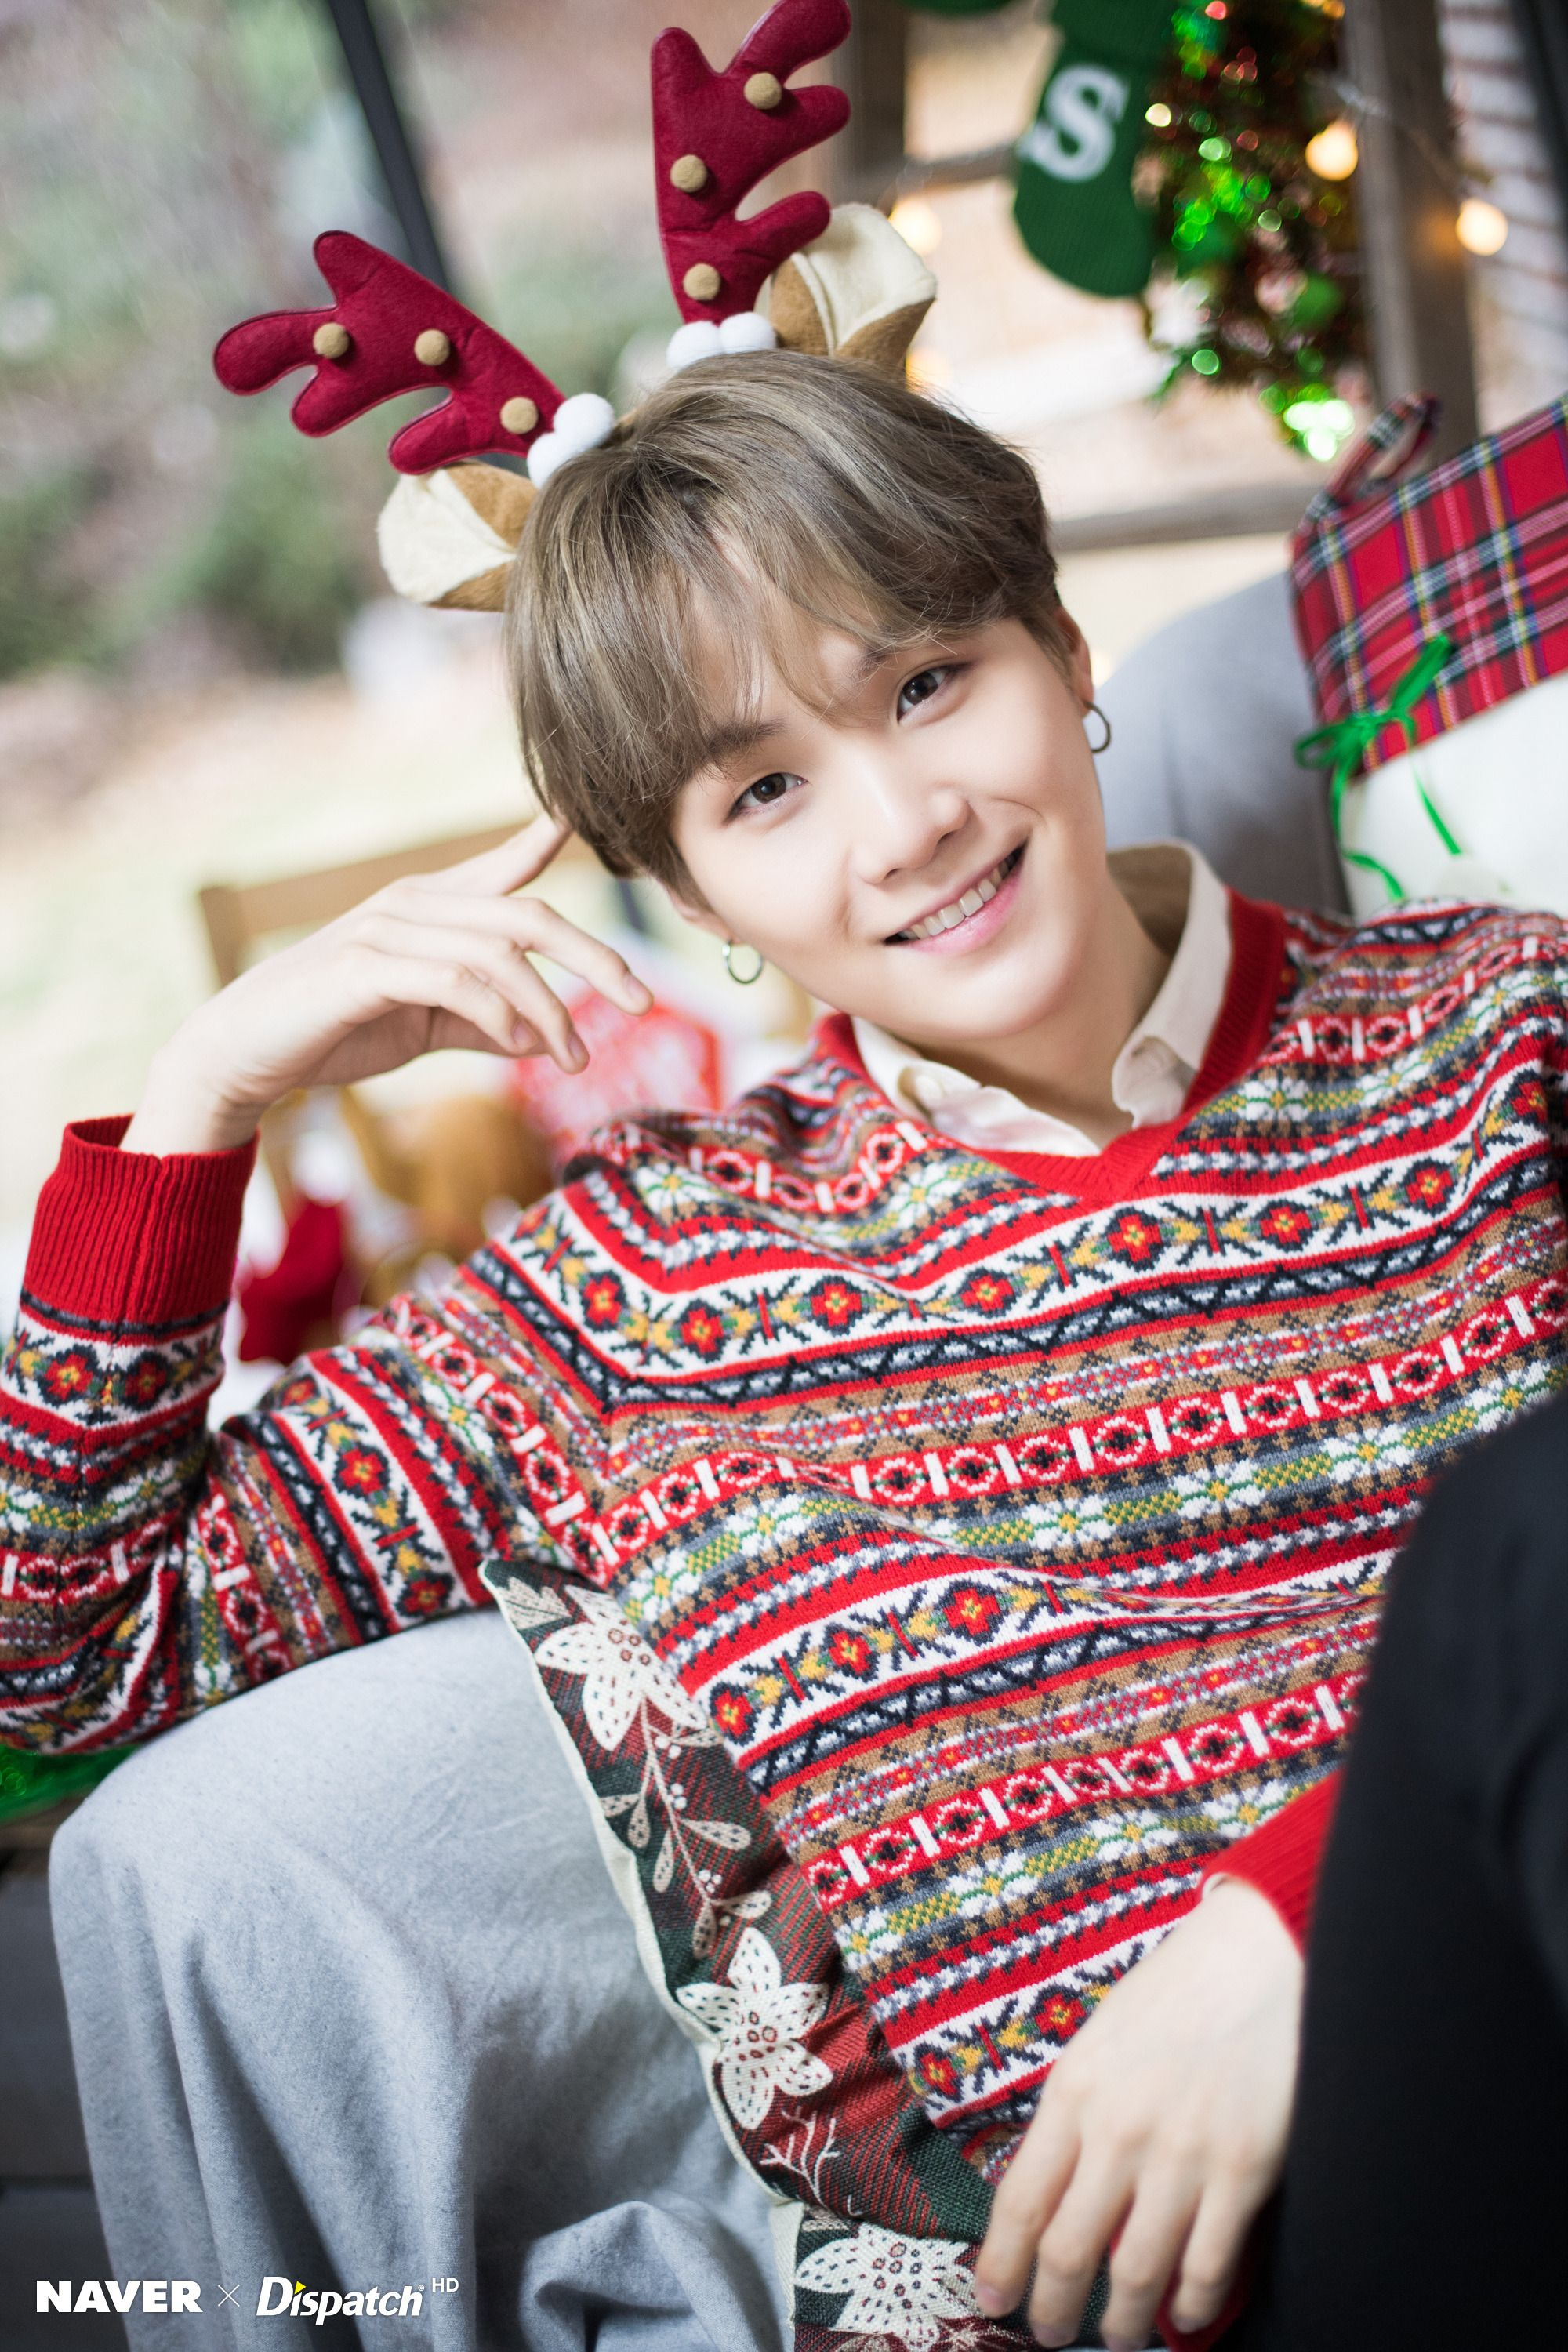 Bts Christmas 2020 Pin by Skinny Legend 2.0 on Min Yoongi in 2020 | Bts dispatch, Bts